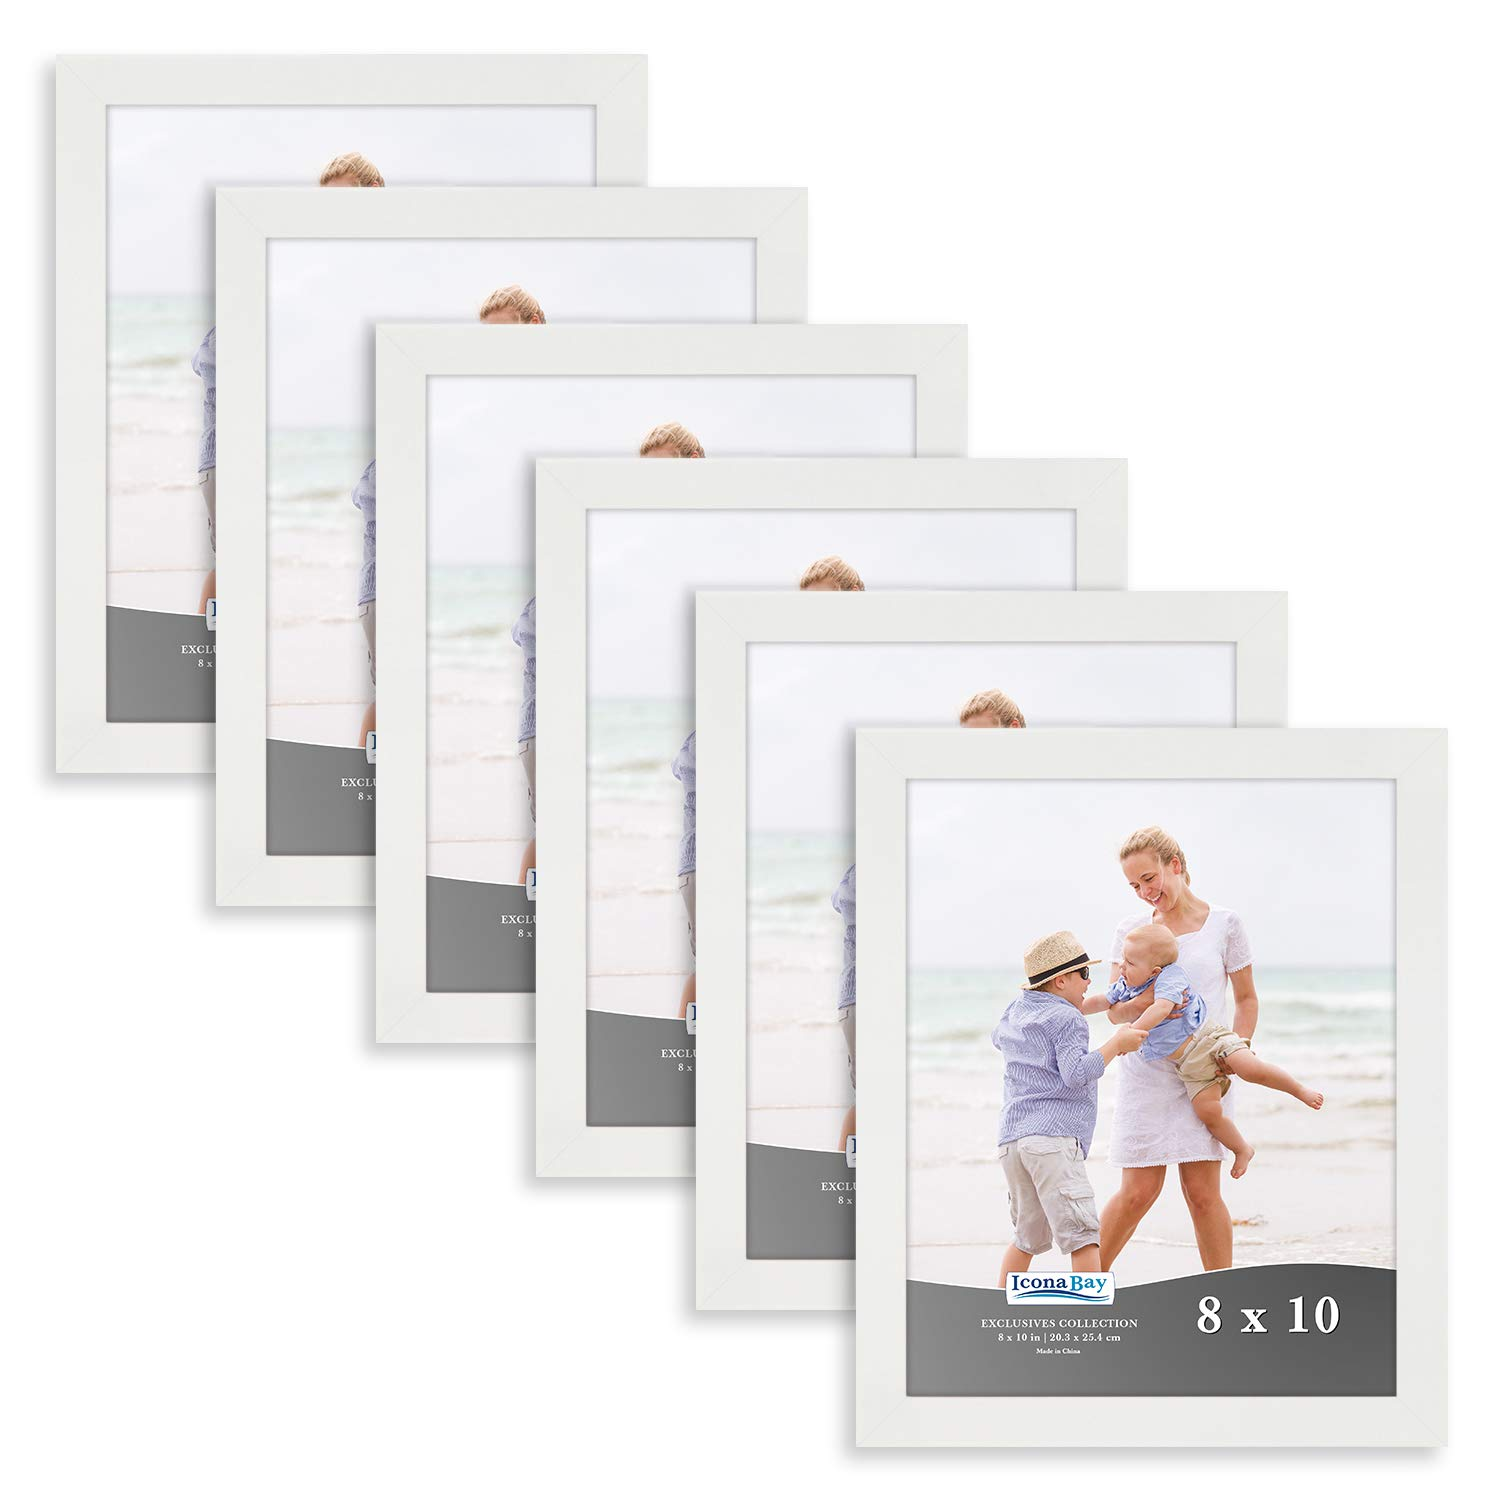 Icona Bay 8x10 Picture Frame (6 Pack, White), White Sturdy Wood Composite Photo Frame 8 x 10, Wall or Table Mount, Set of 6 Exclusives Collection